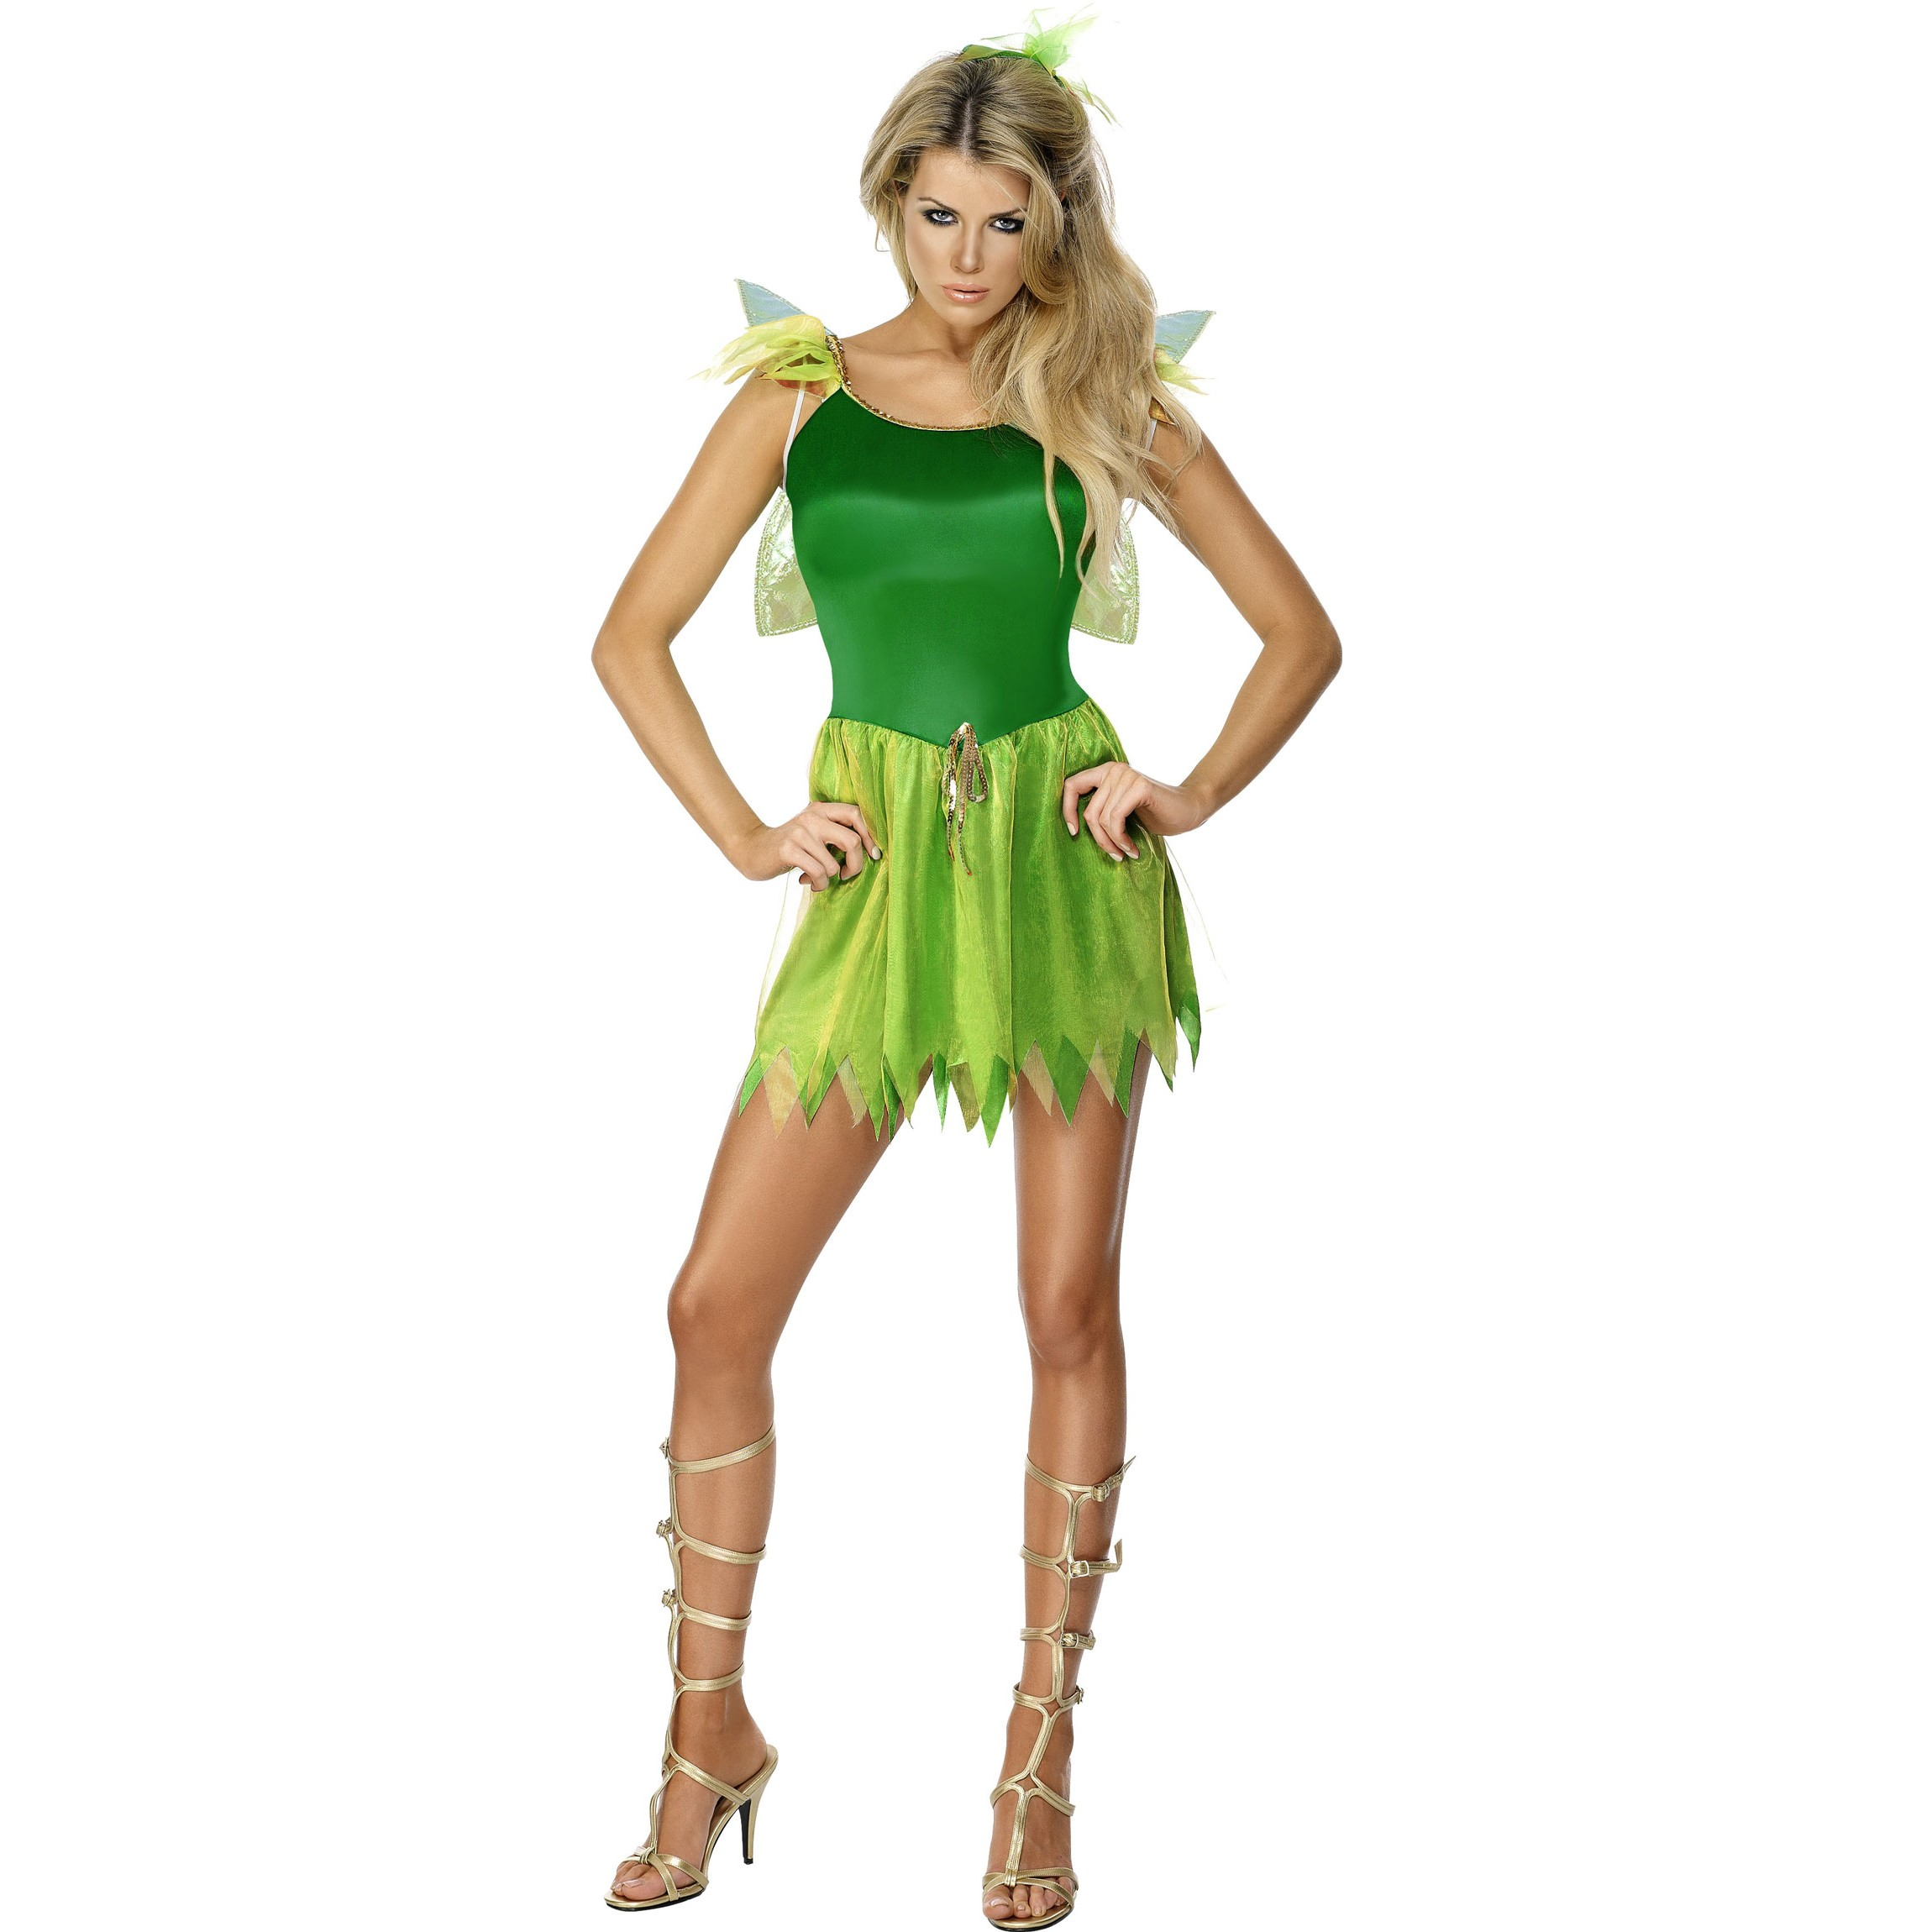 peter pan character costumes for adults